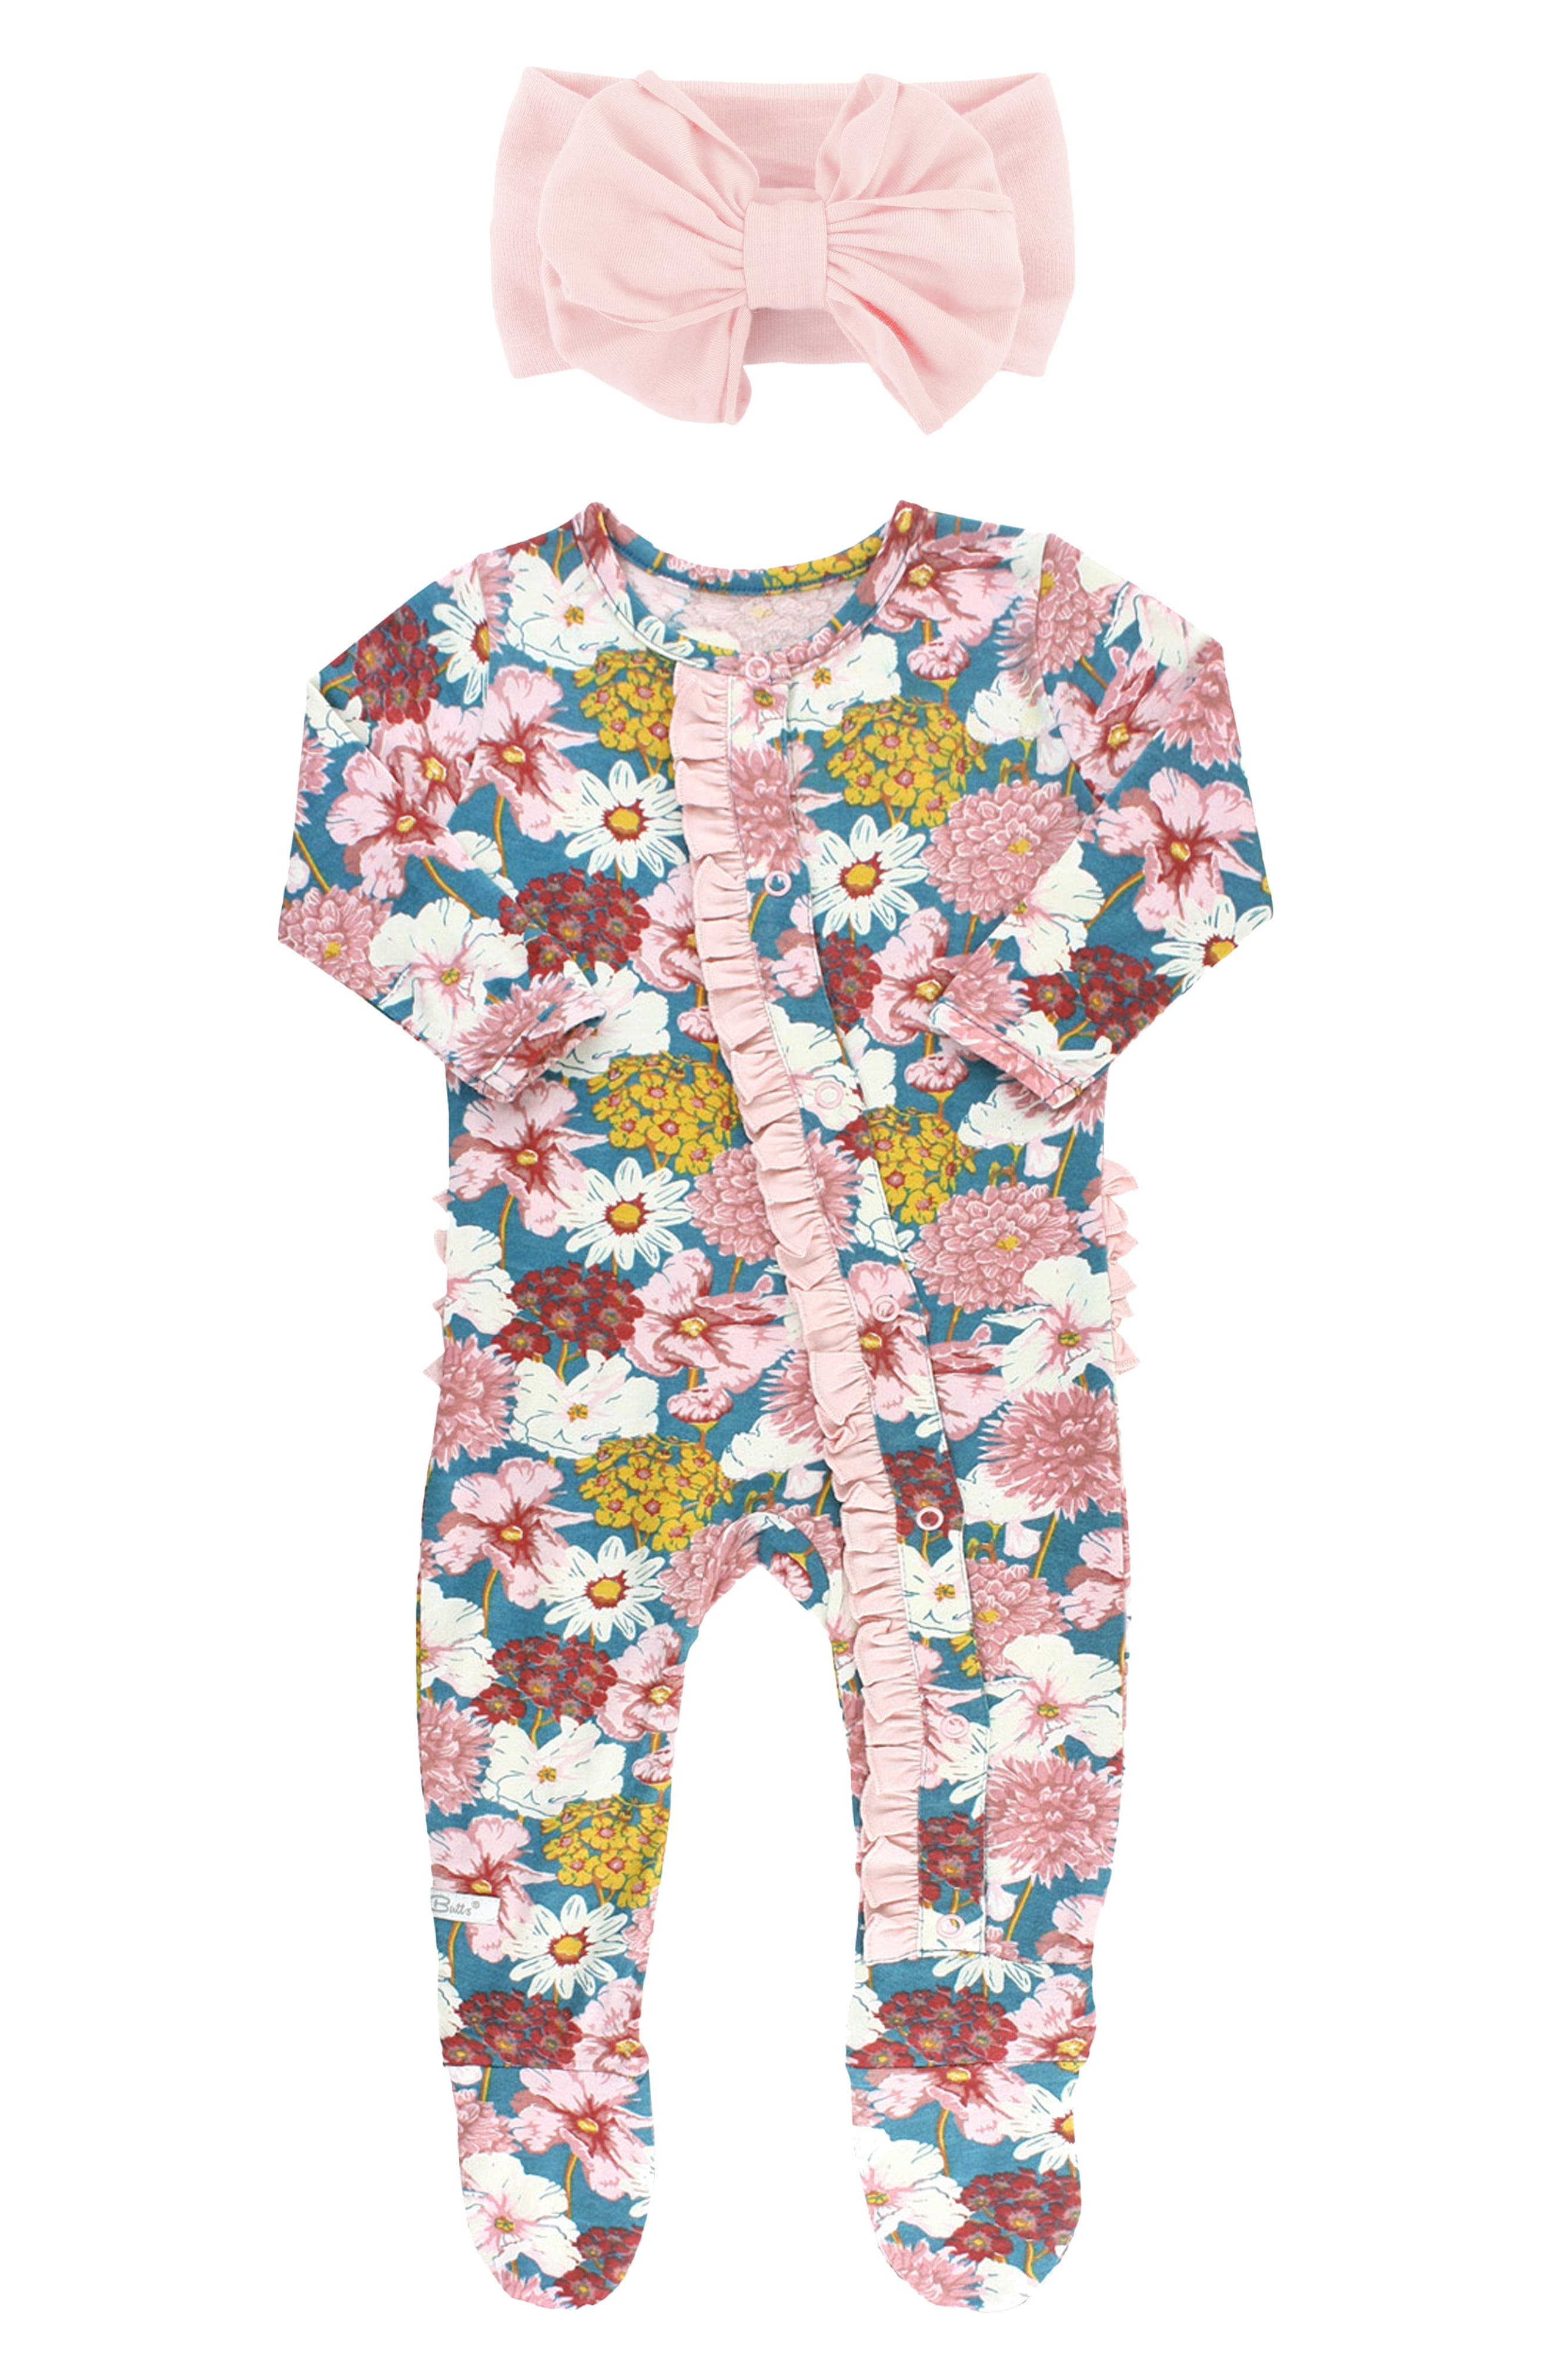 Just because the day is ending doesn\\\'t mean baby\\\'s cute style has to-enter these adorable floral-print jammies with signature ruffles across the derriere. The luxuriously soft and lightweight fabric is perfect for taking your little one from naptime to playtime in total comfort. This footed style is paired with a bowed head wrap to keep the pajama party going all day long. Style Name: Rufflebutts Radiant Stems Ruffle Fitted One-Piece Pajamas &